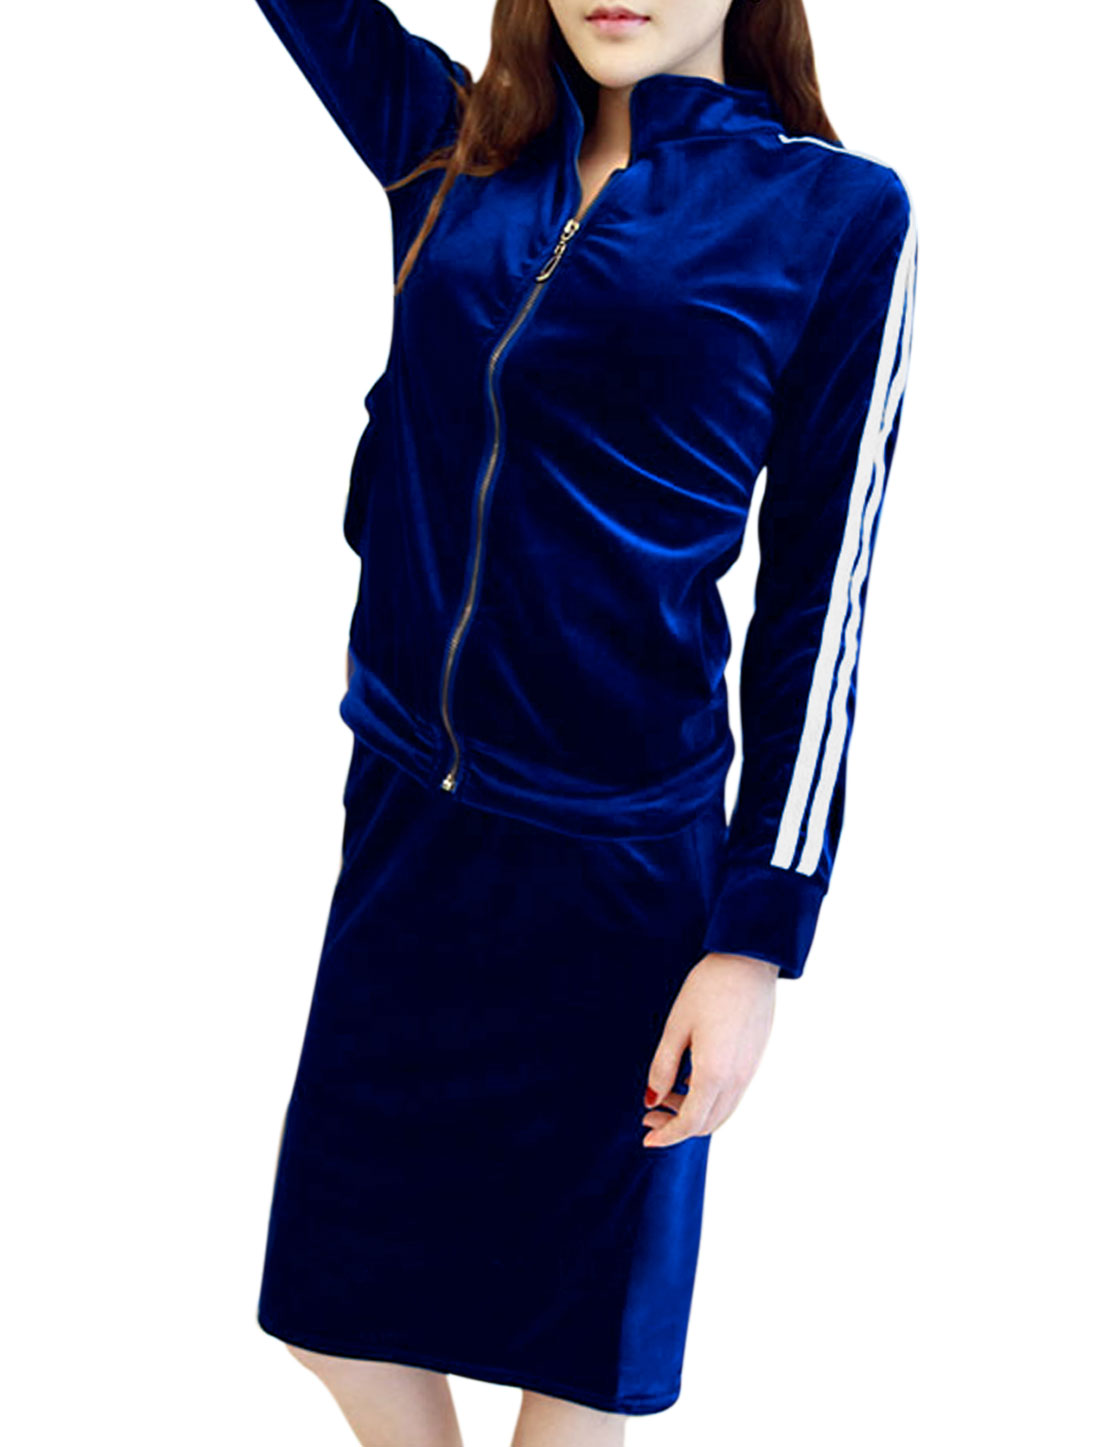 Lady Stripes Detail Fashion Velvet Jacket w Stretchy Waist Velvet Skirt Royal Blue S